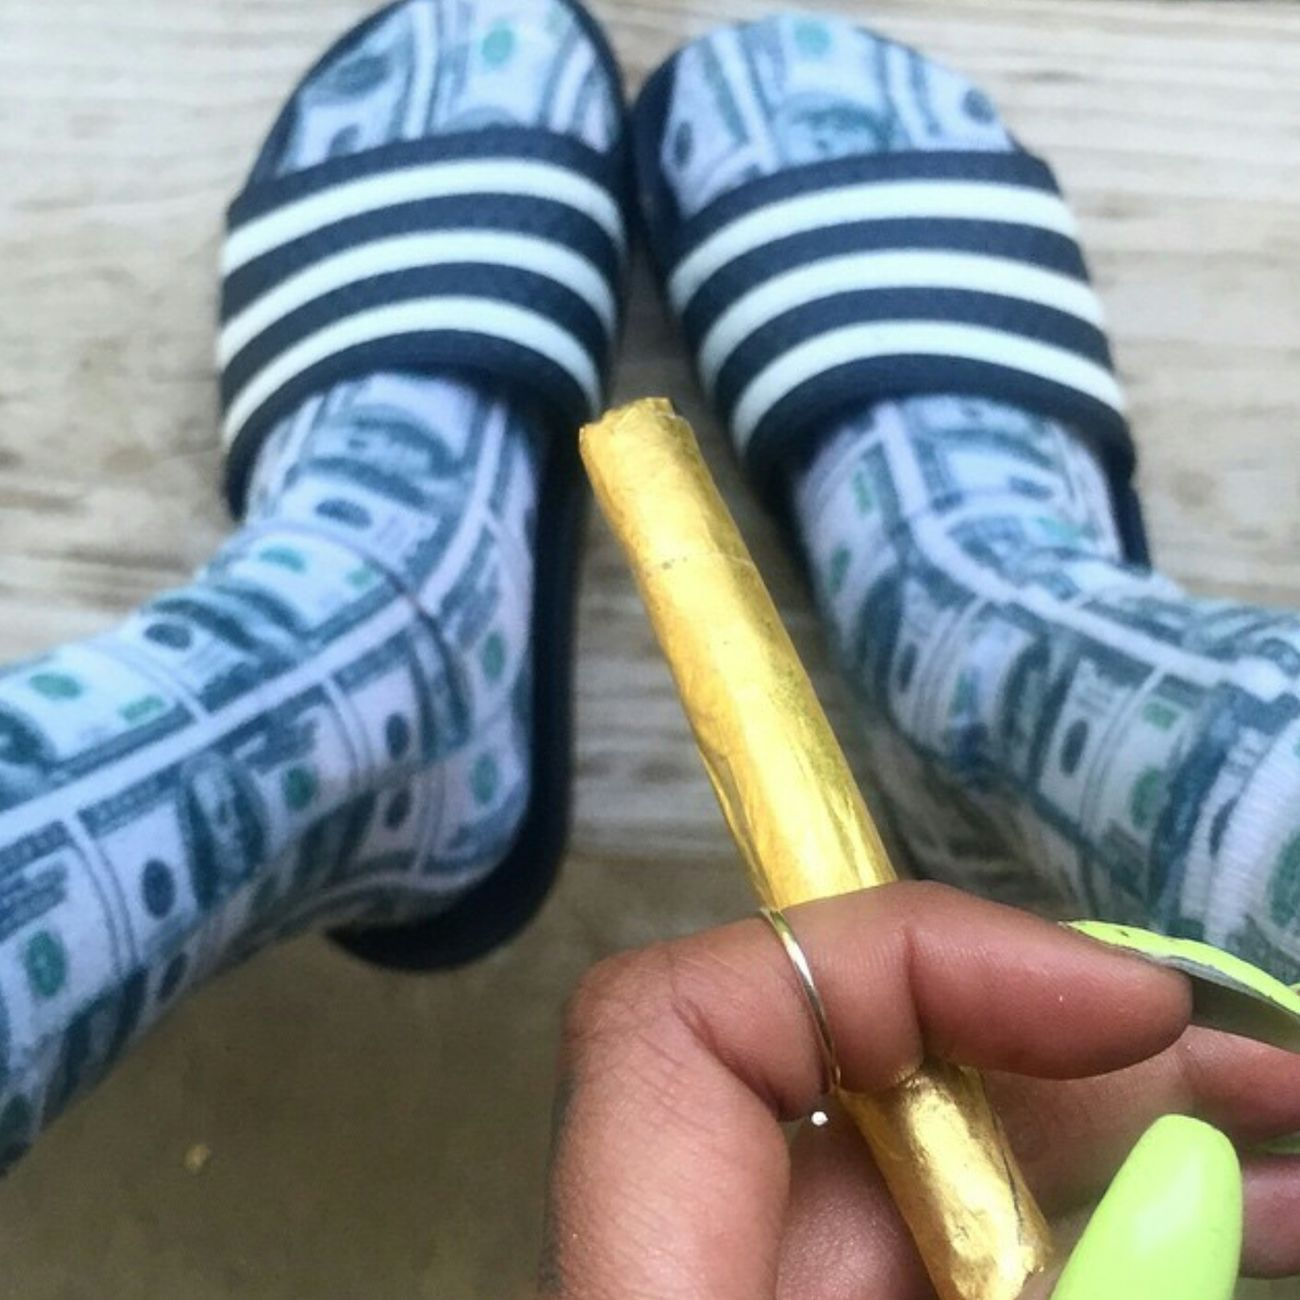 Pattyeffinmayo Slippers Socks Blunt Gold Weed High Life Photography Gorgeous Aesthetics Urban Fashion Urbanstyle Nails Long Nails